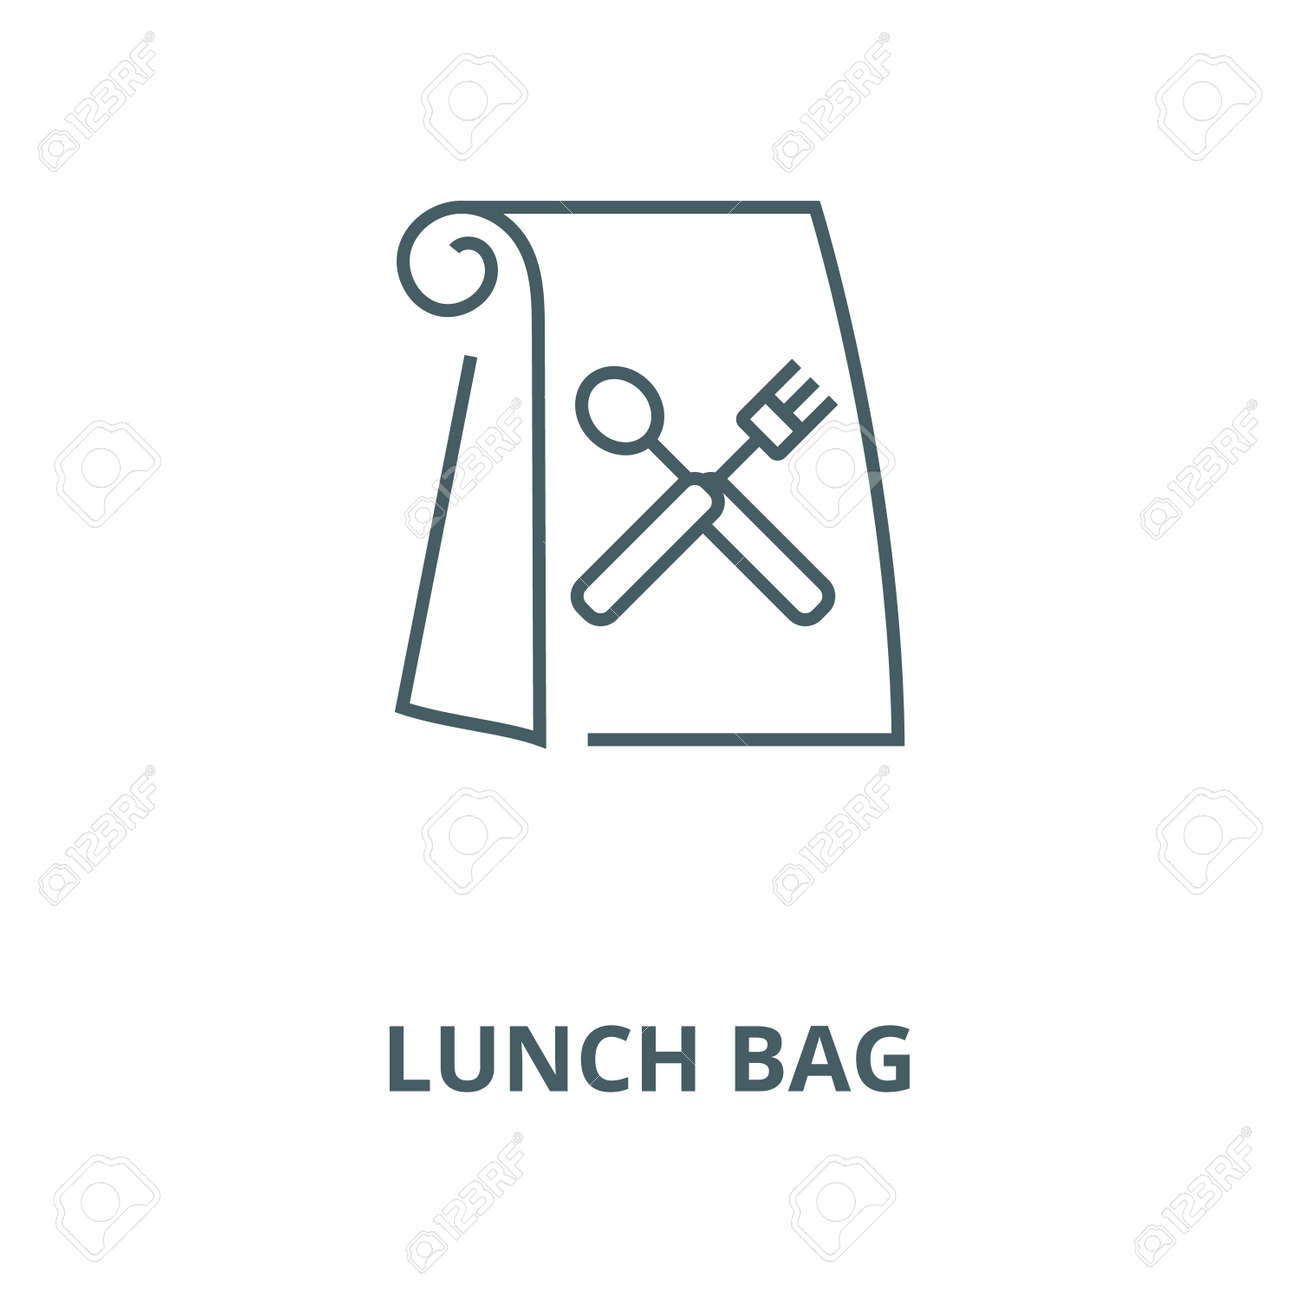 Lunch bag vector line icon, outline concept, linear sign - 122415941